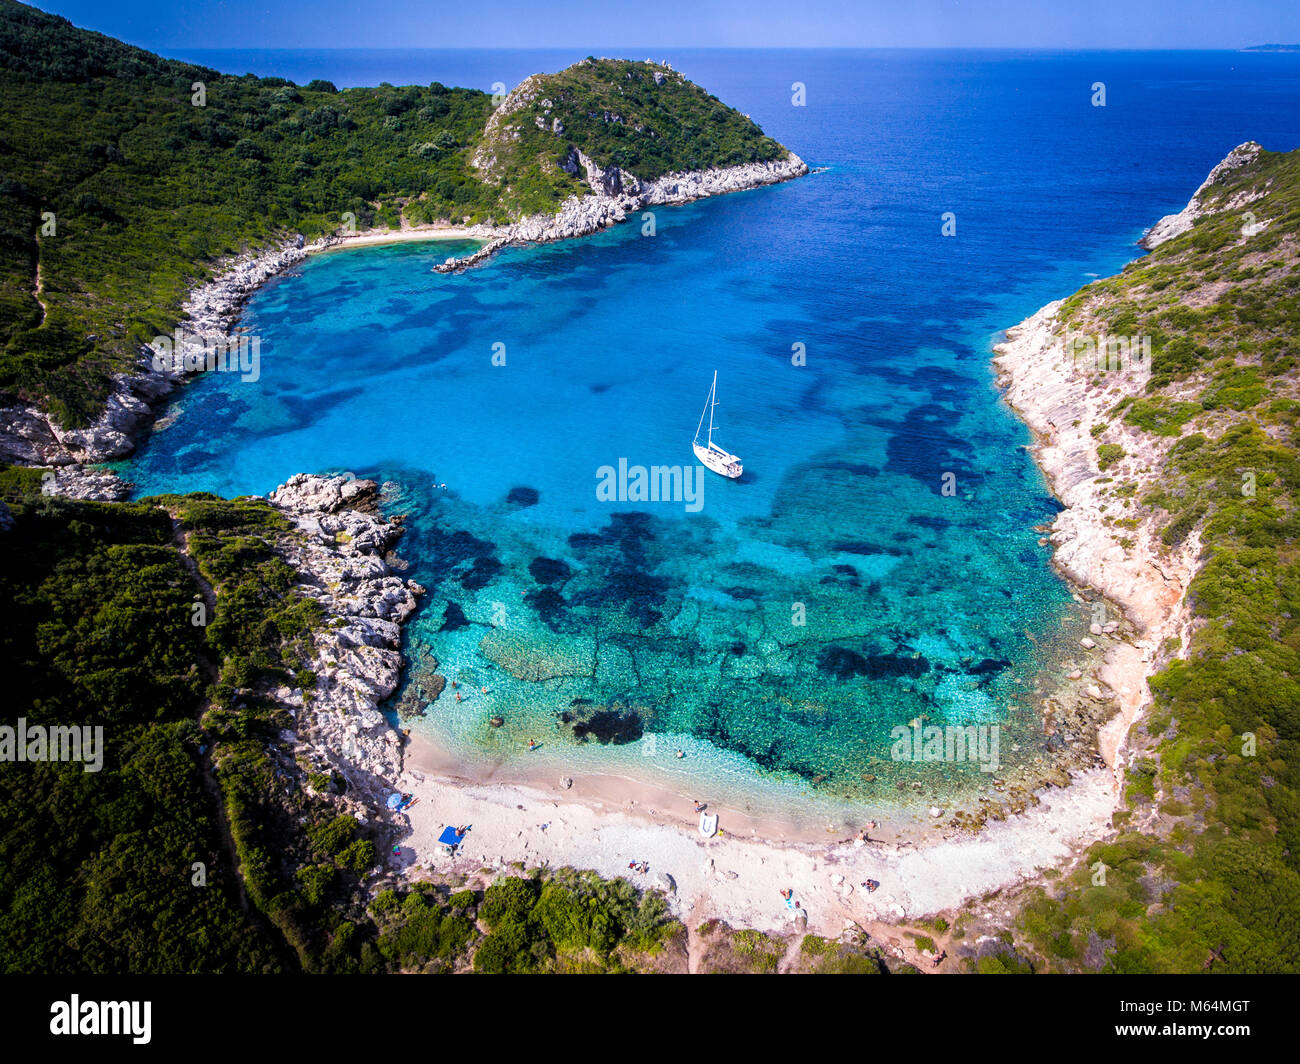 Porto Timoni, on of the hidden beaches of Corfu Island, also known as Kerkyra, near Agios Giorgios beach. Turqoise Stock Photo